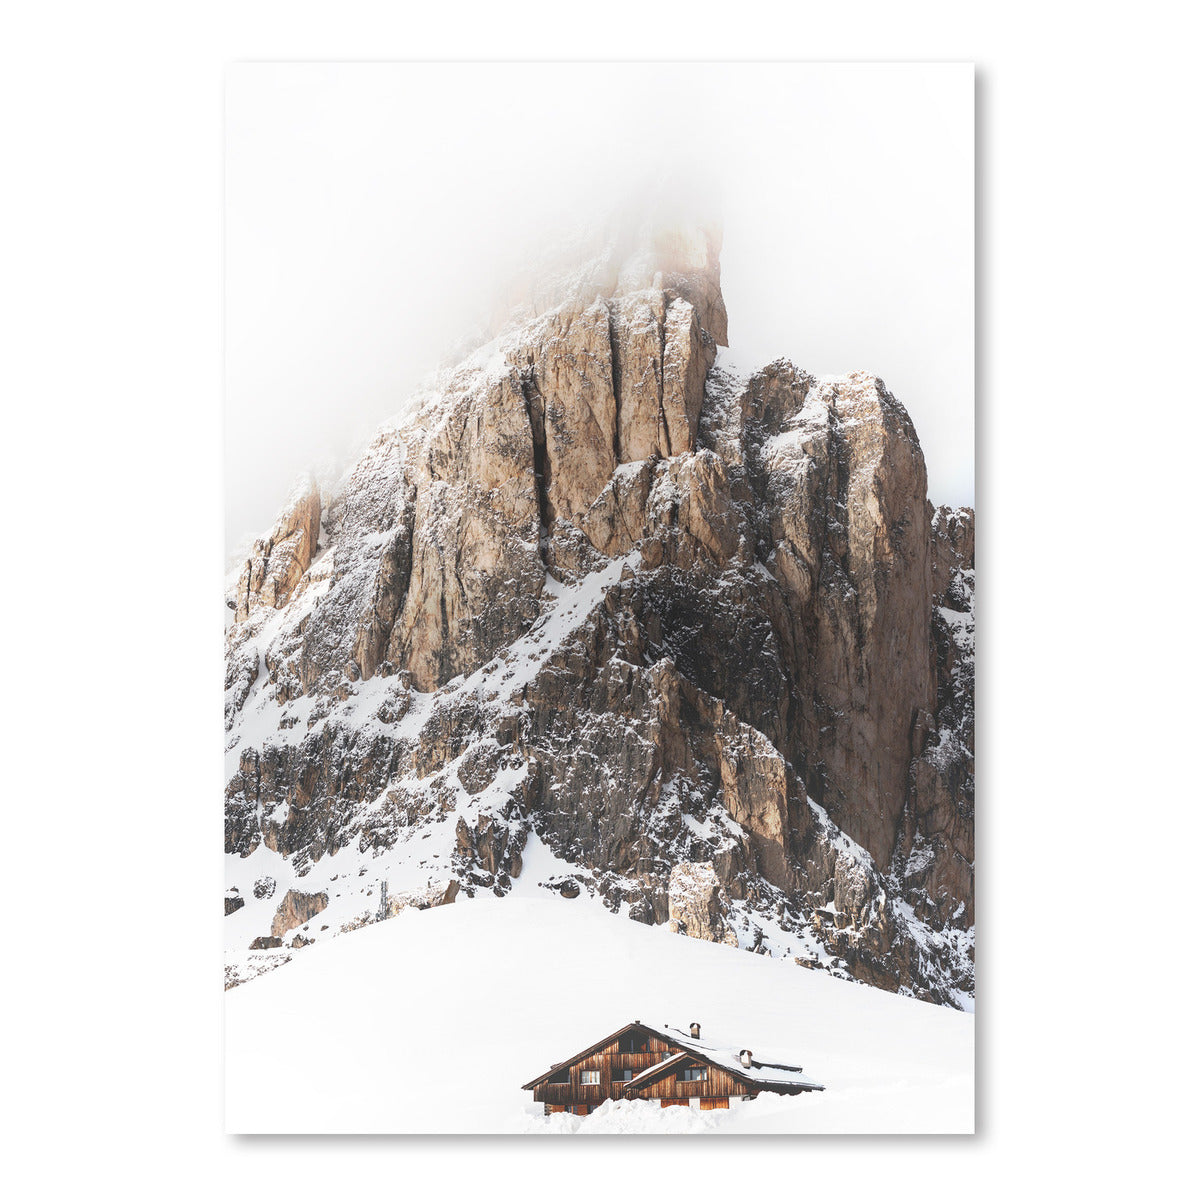 Winter Holidays In Mountains by Tanya Shumkina - Art Print - Americanflat